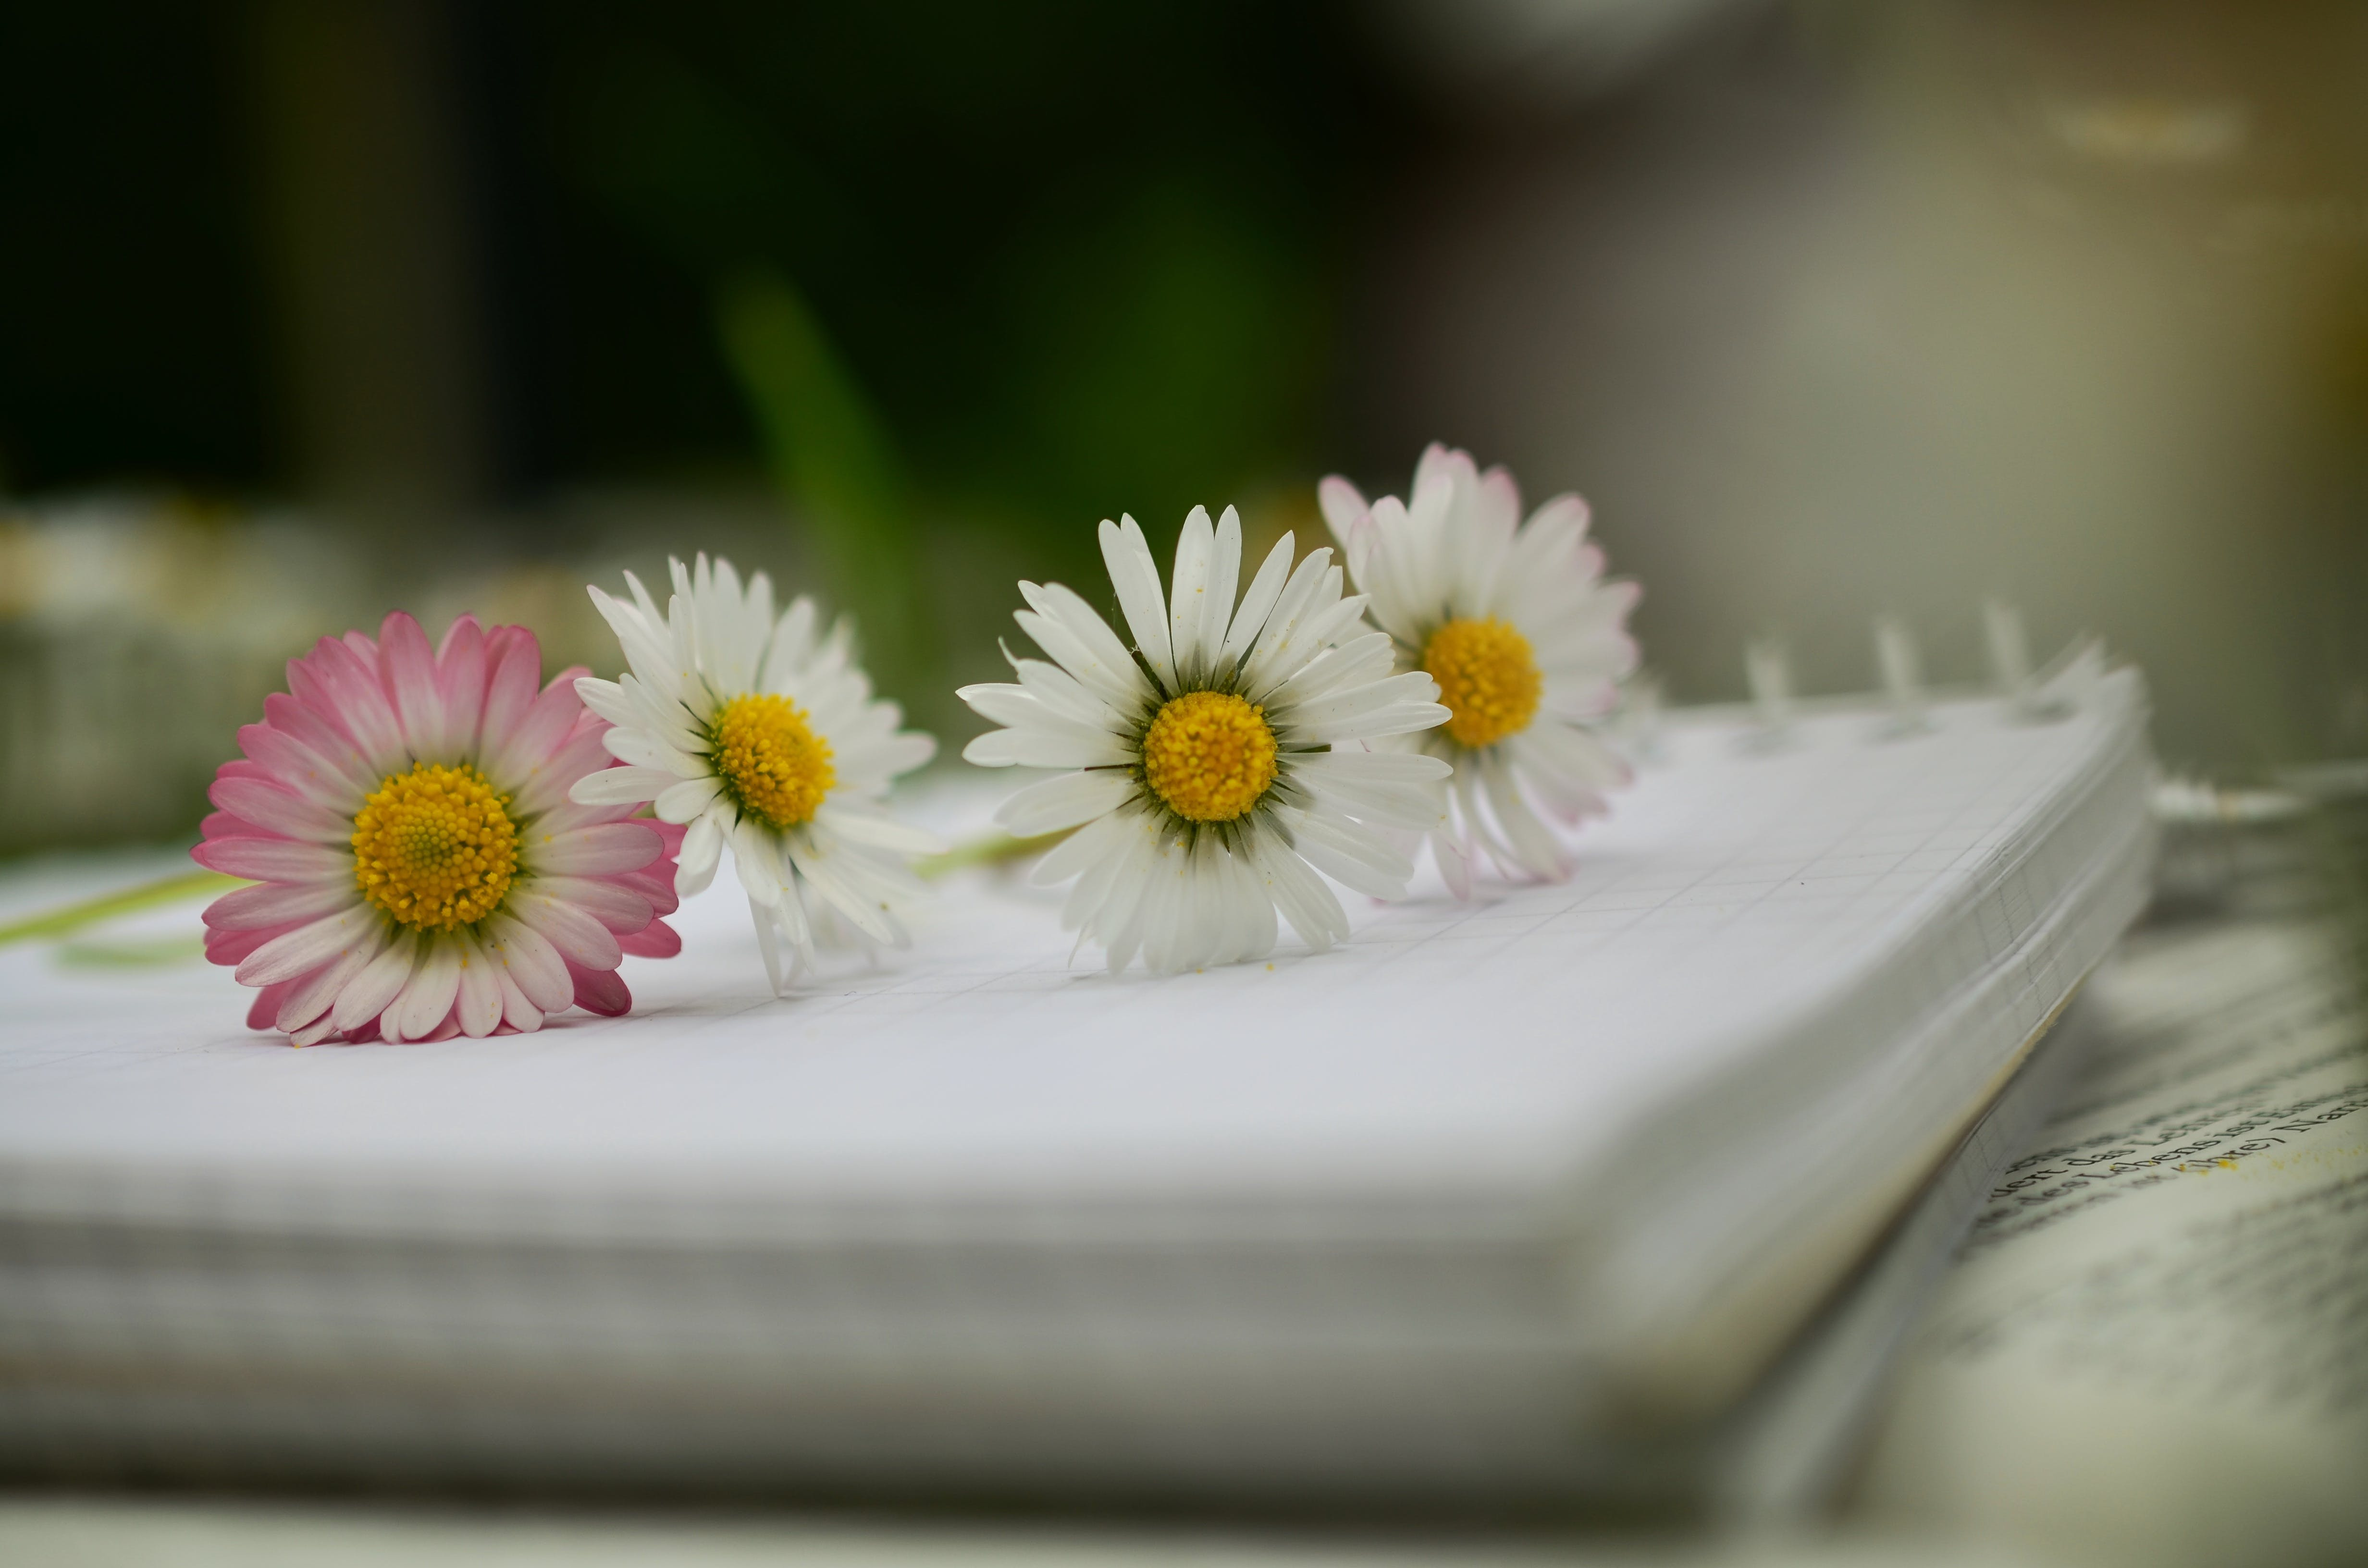 Four Daisies on Book